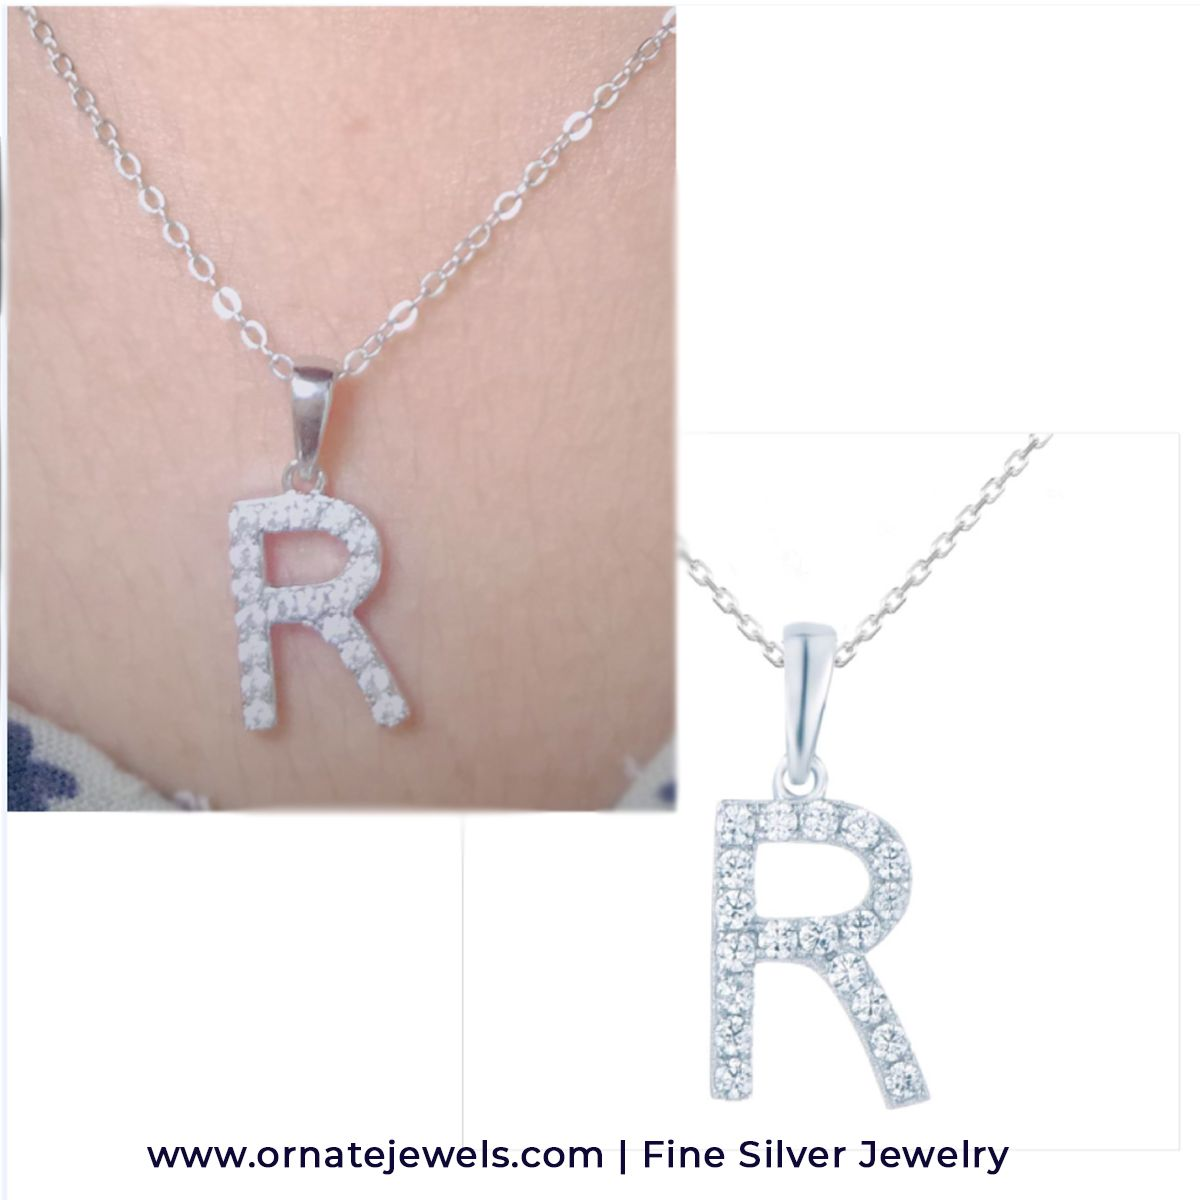 Buy Silver R latter Pendant for Girls as Friendship Day Gift